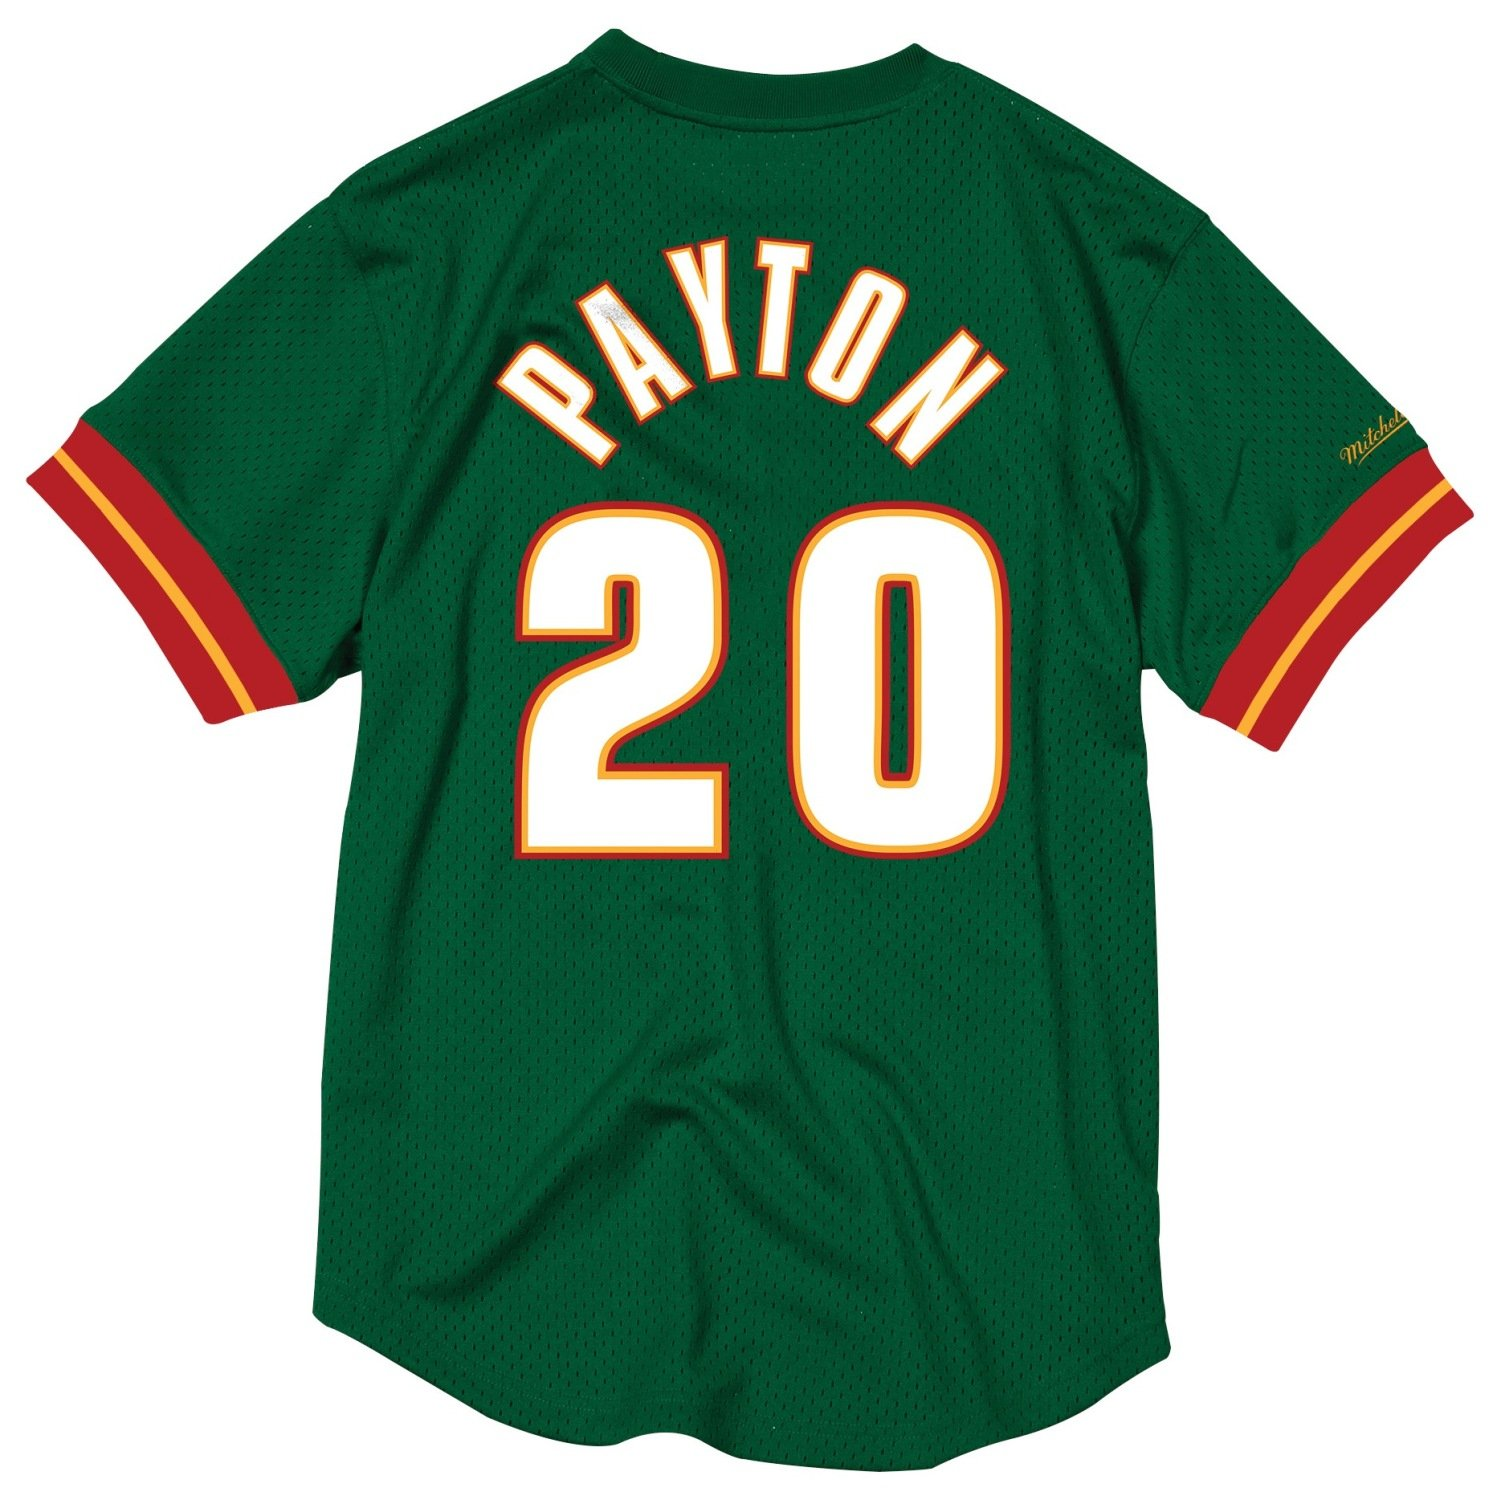 fe4df4fcc1de Amazon.com   Mitchell   Ness NBA Seattle Supersonics Gary Payton  20 Mesh  Crewneck Jersey   Sports   Outdoors